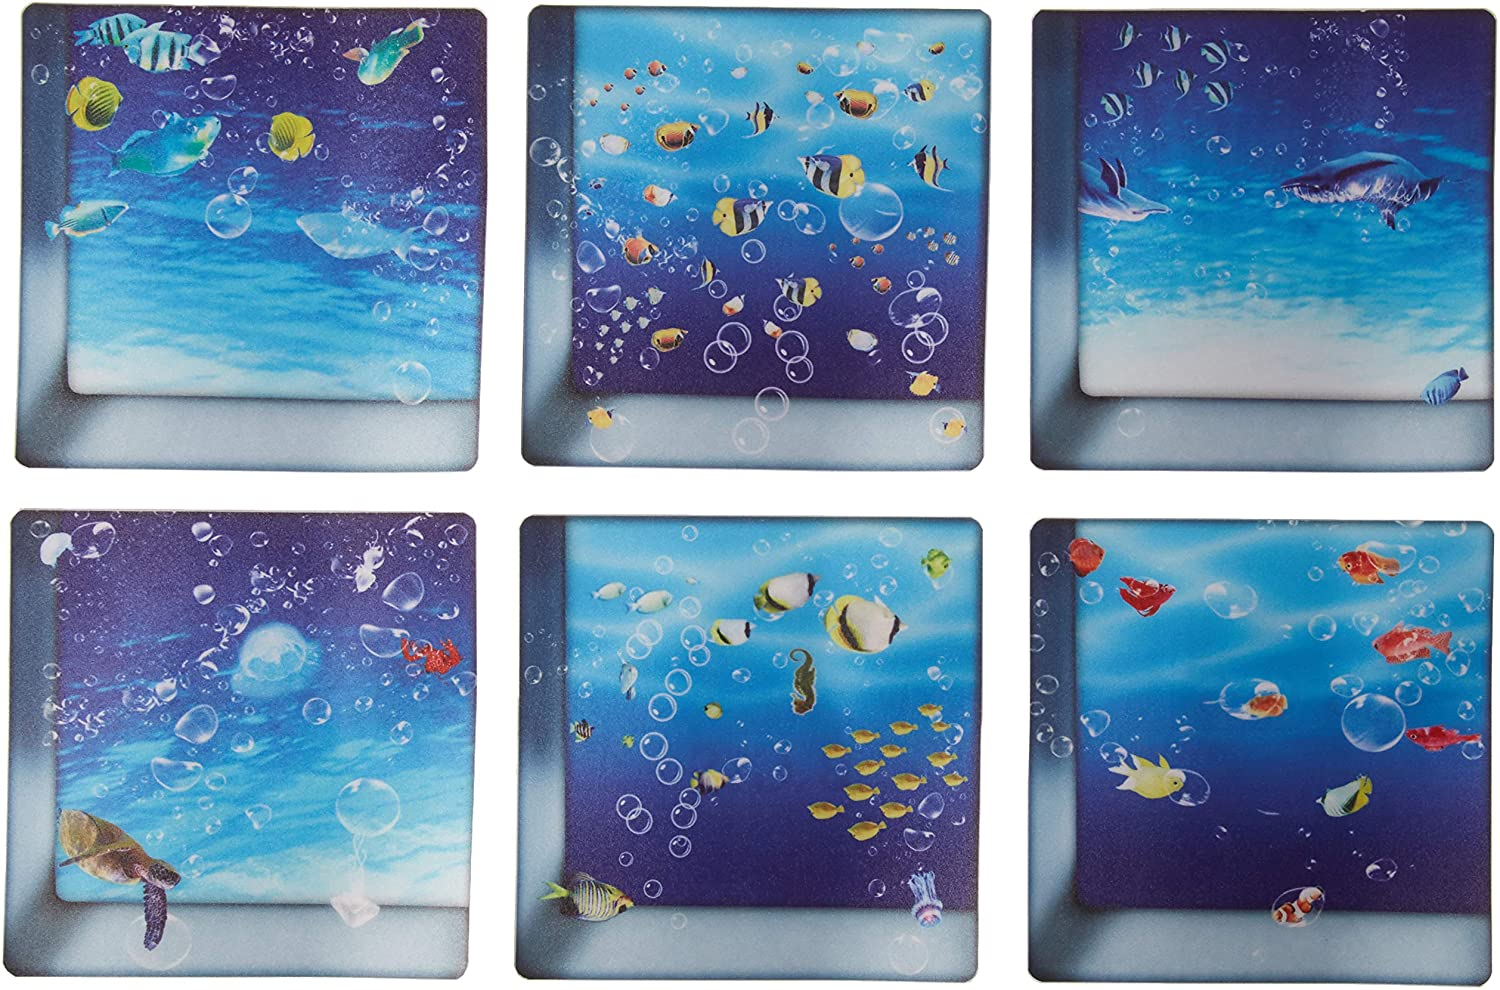 AILEGOU 3D Non-Slip Bathtub Stickers, Children's Animal Shower Stickers, Safety Treads Add Non-Slip Traction to Tubs Showers Pools Tables,Total 6 Pieces(Fishes-03)